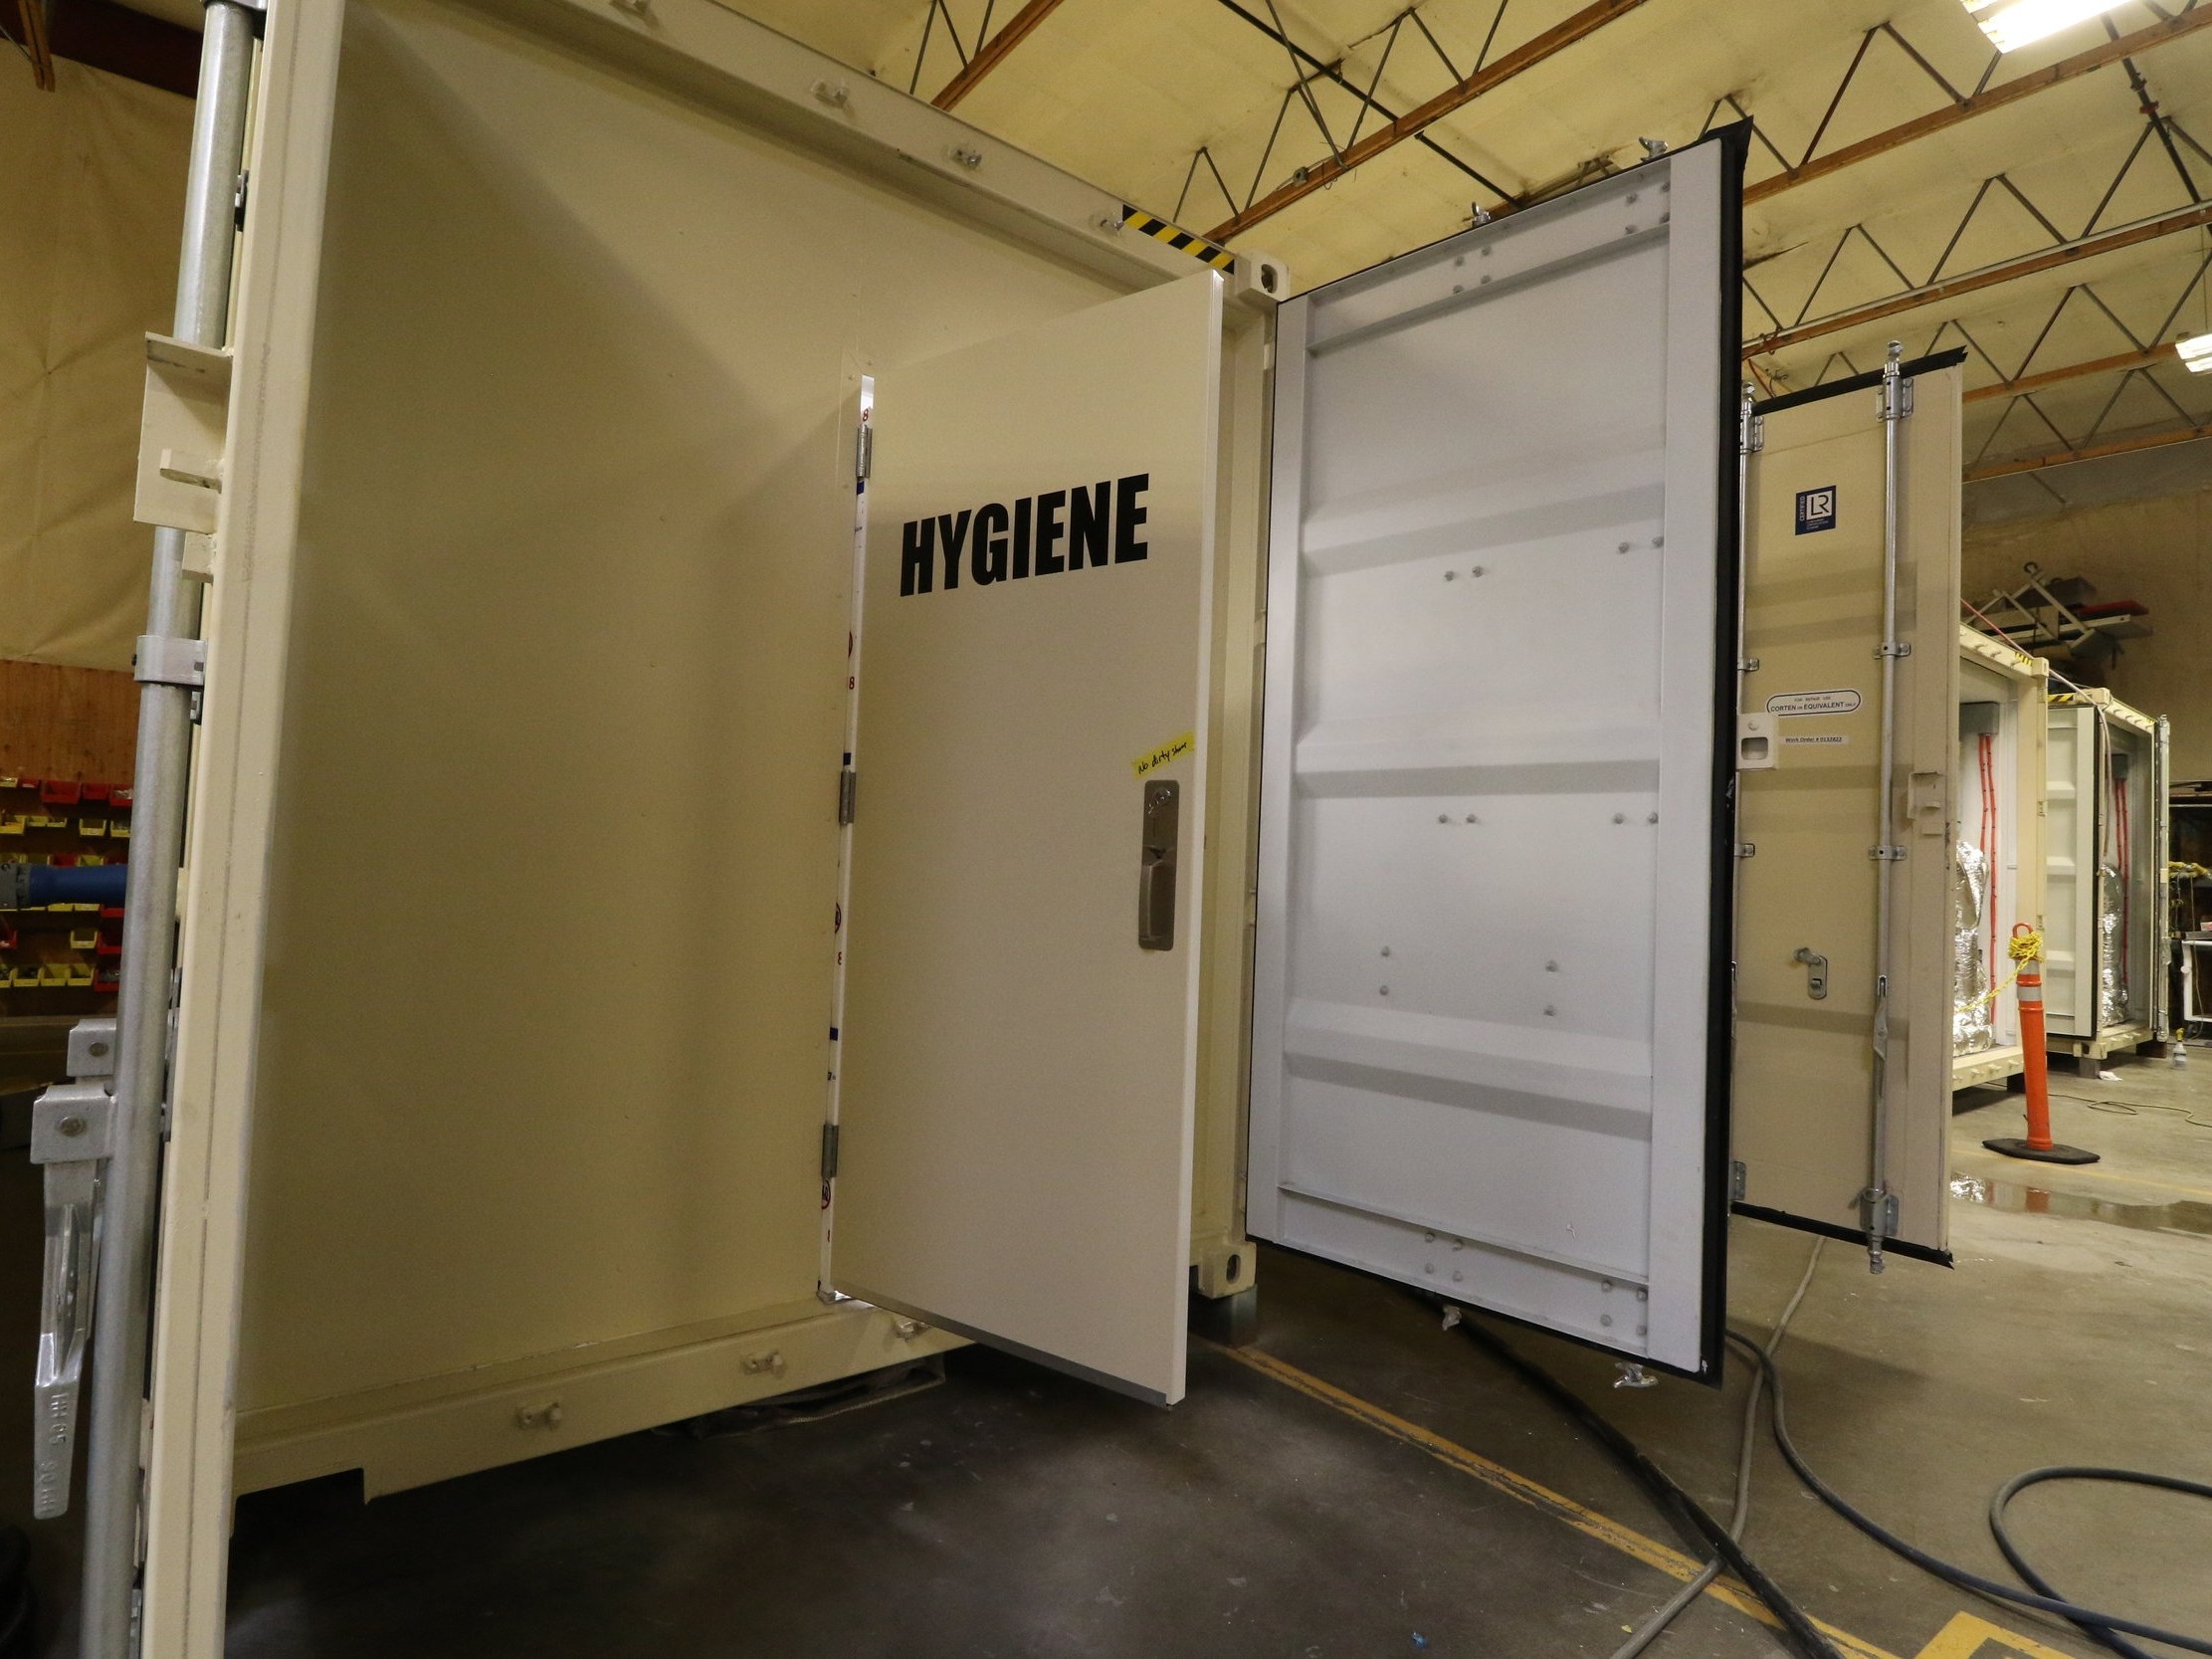 Western Shelter Containerized Shelter Hygiene Self Contained Container